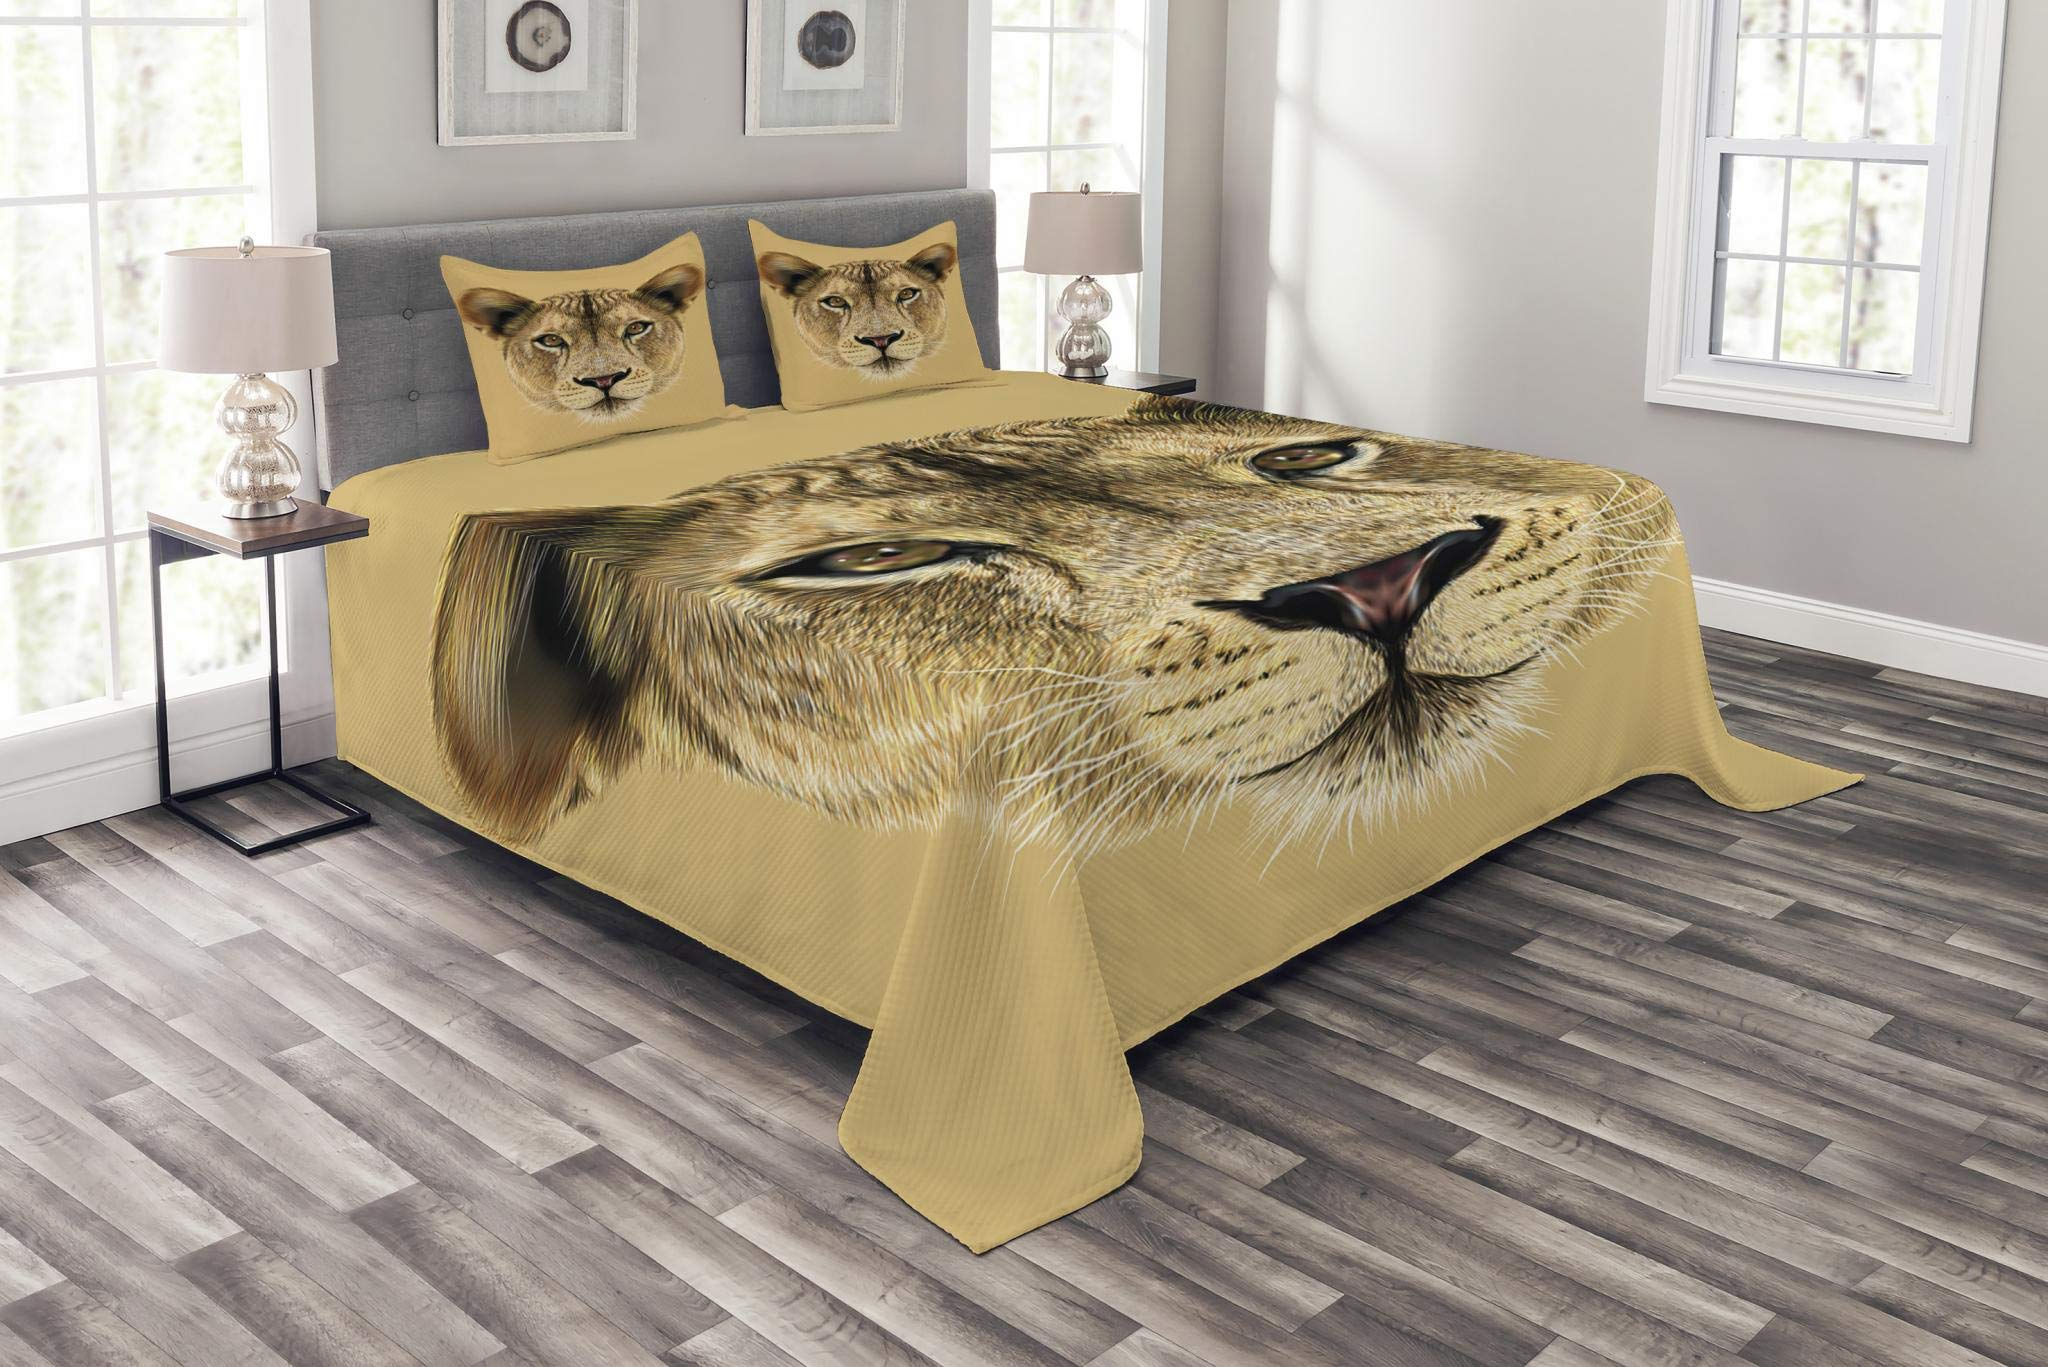 Lunarable Animal Print Bedspread Set King Size, Wildlife Theme Cute Portrait of a Fluffy Lioness Cat Face Pattern, Decorative Quilted 3 Piece Coverlet Set with 2 Pillow Shams, Sand Brown Pale Coffee